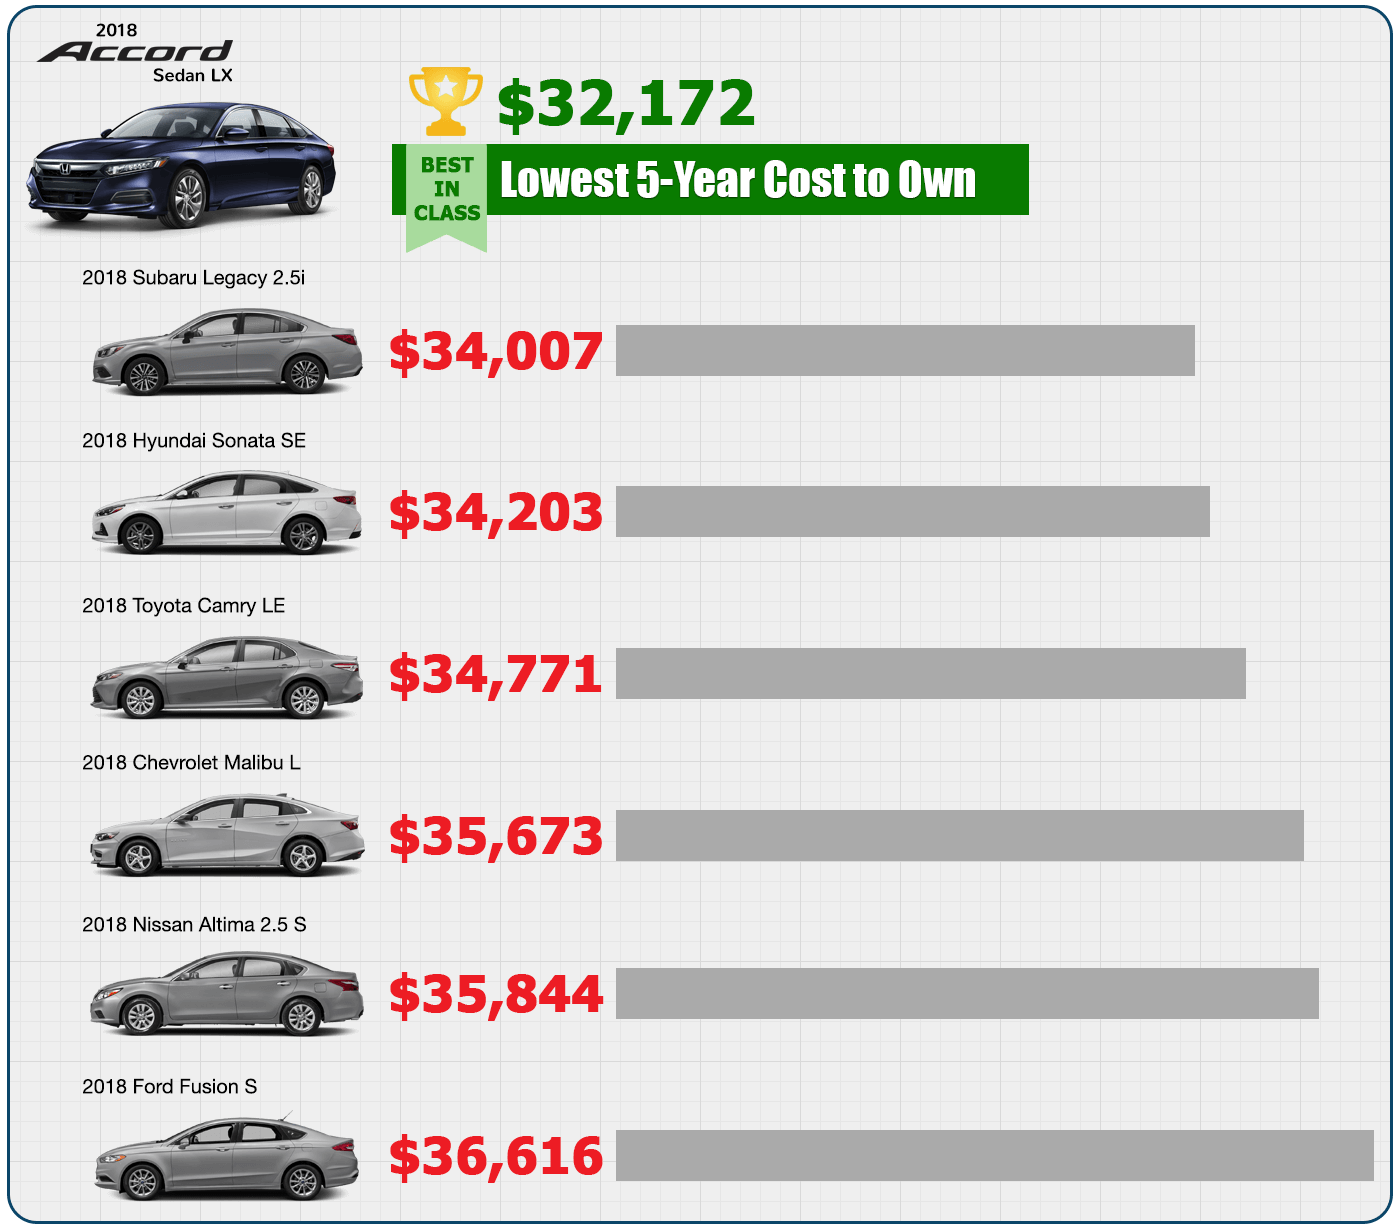 2018 KBB.com Lowest 5-Year Cost to Own